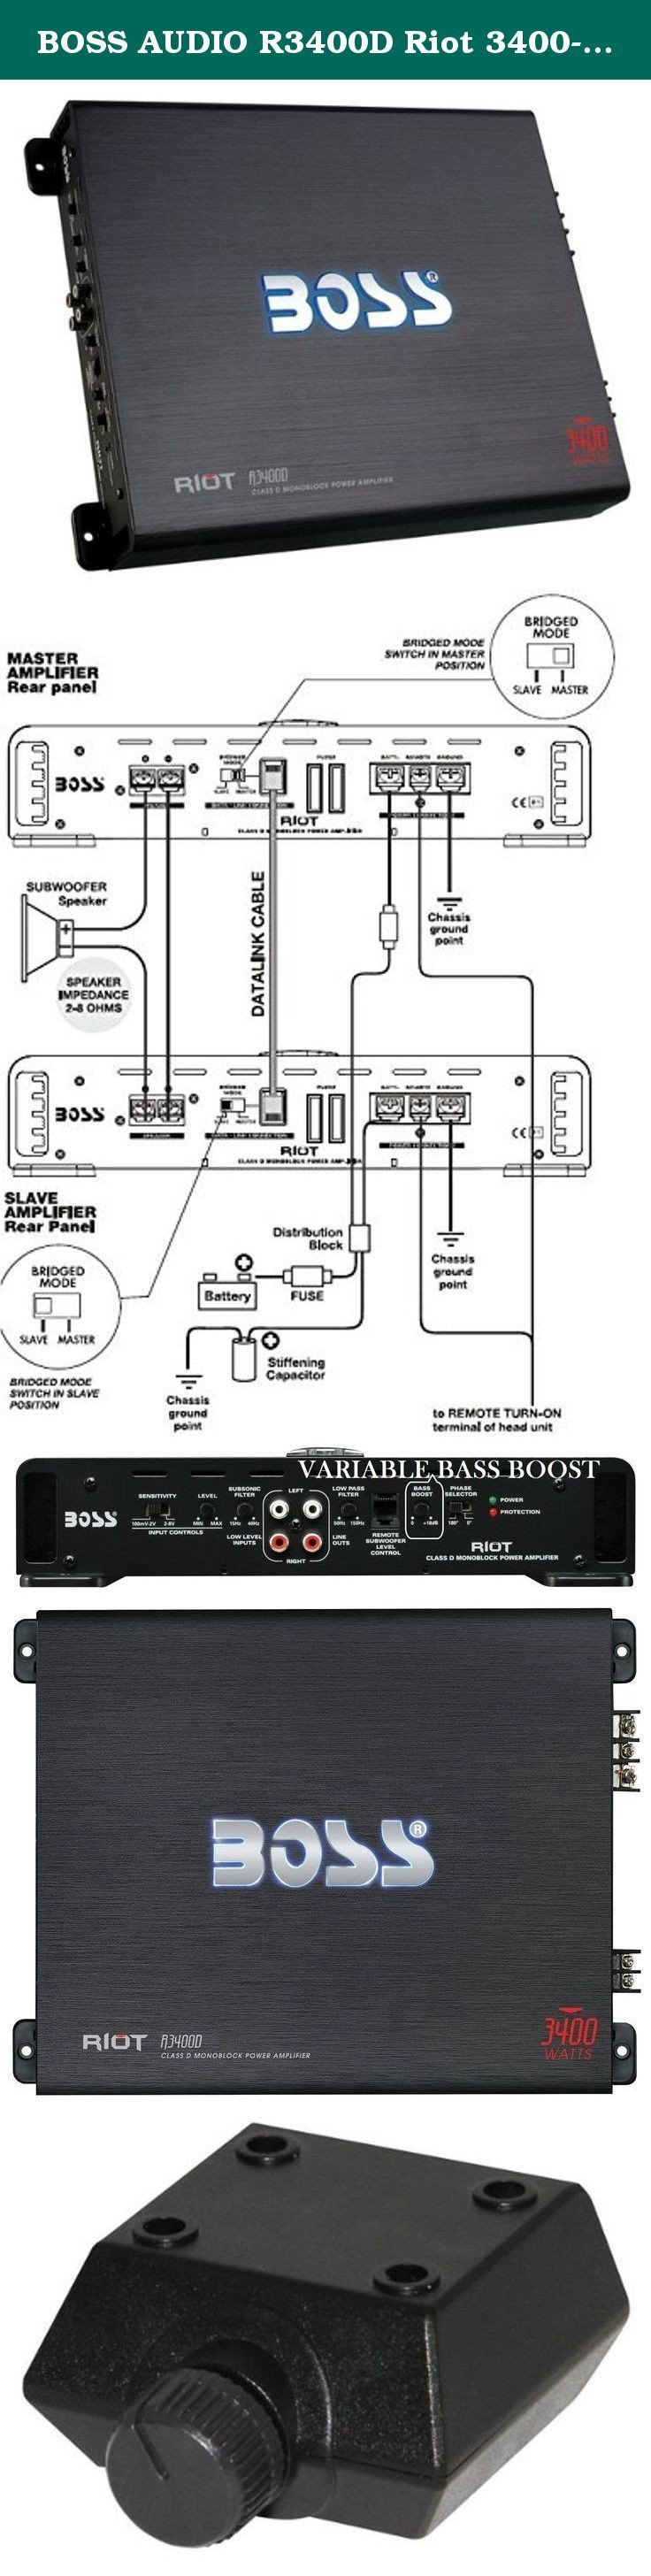 L322 Audio Wiring Diagram Auto Electrical Land Rover Lr3 2005 Diagrams Trailer 1997 Wells Batteries